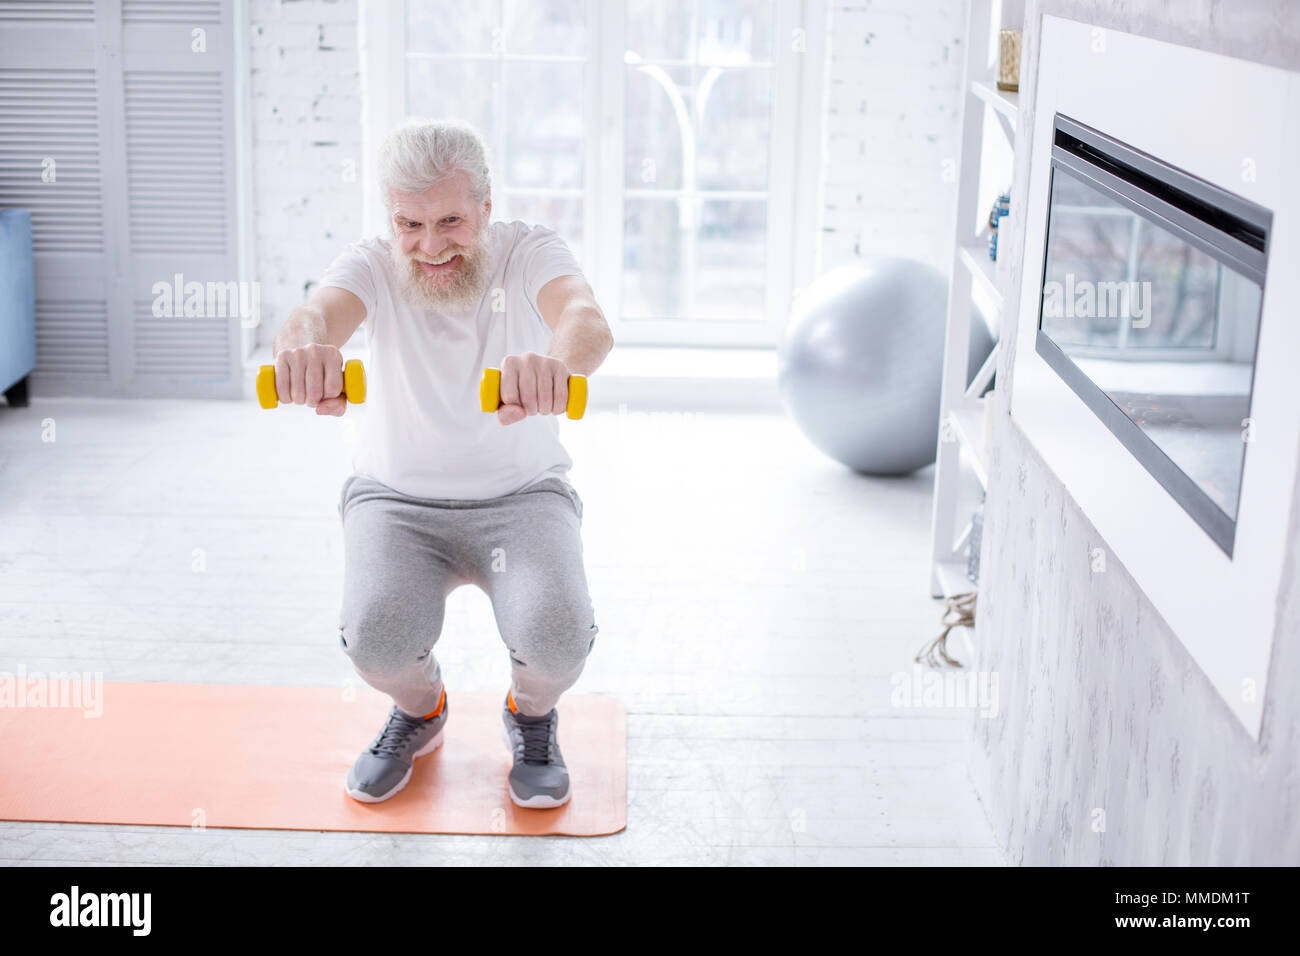 Handsome elderly man holding dumbbells and doing squats - Stock Image